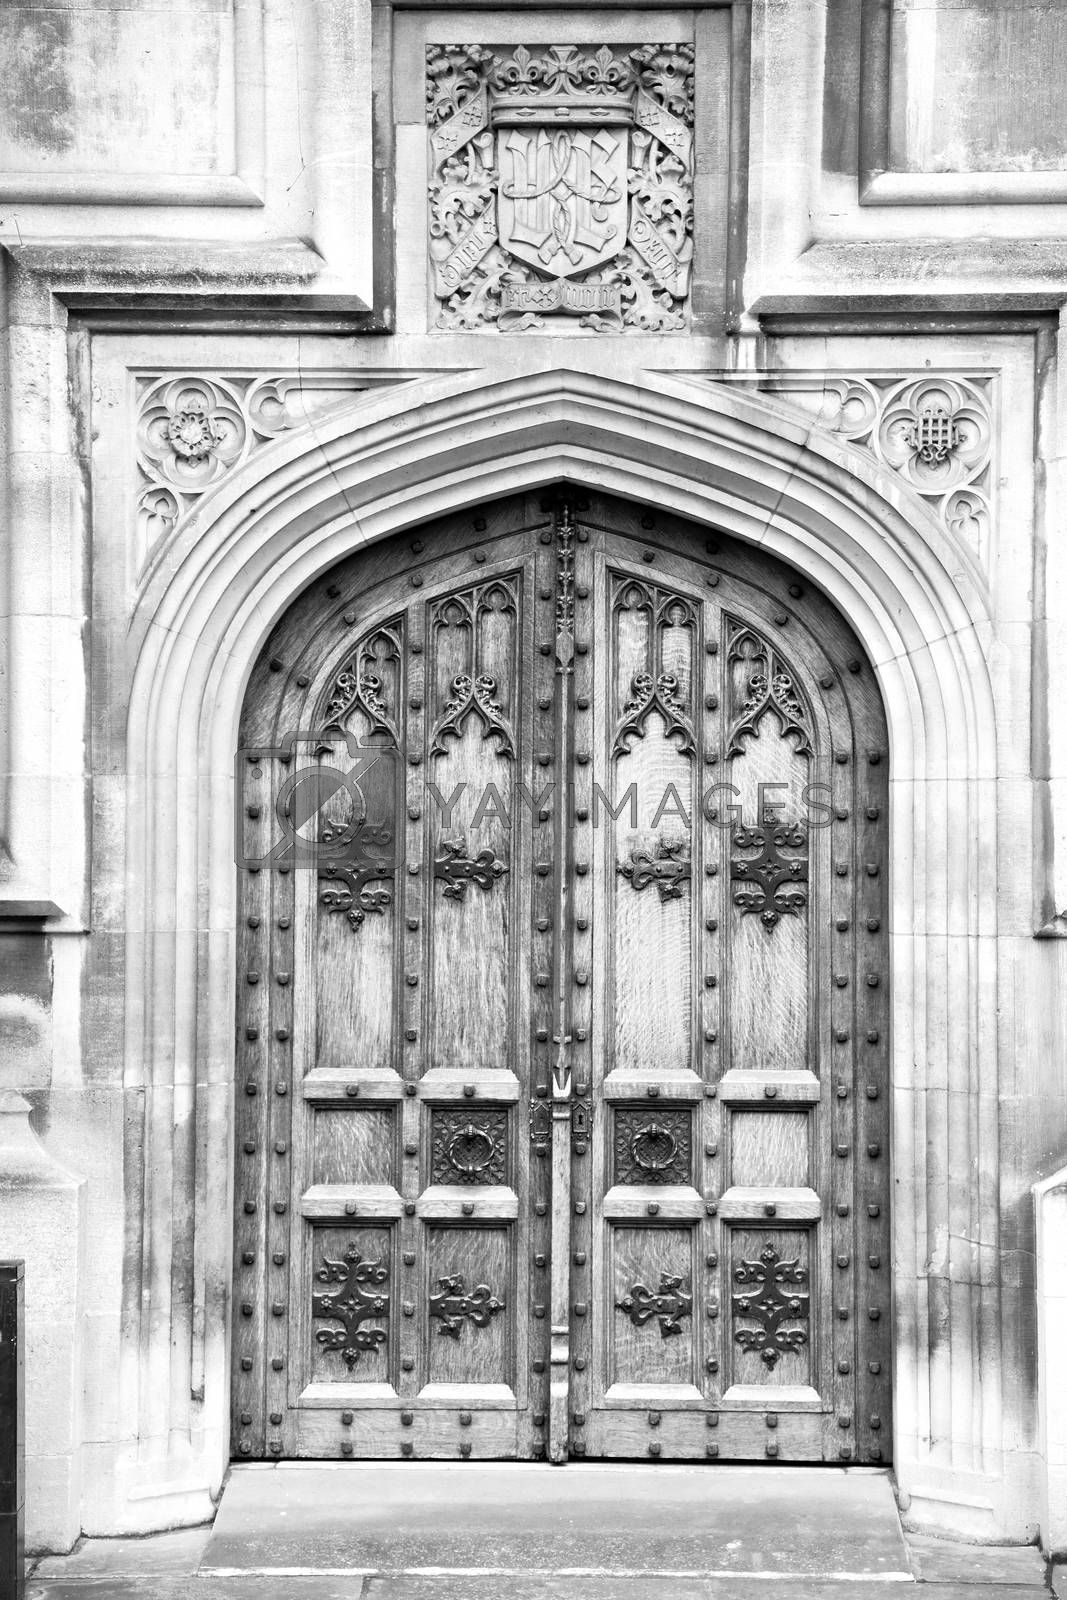 parliament in london old church door and marble antique  wall by lkpro